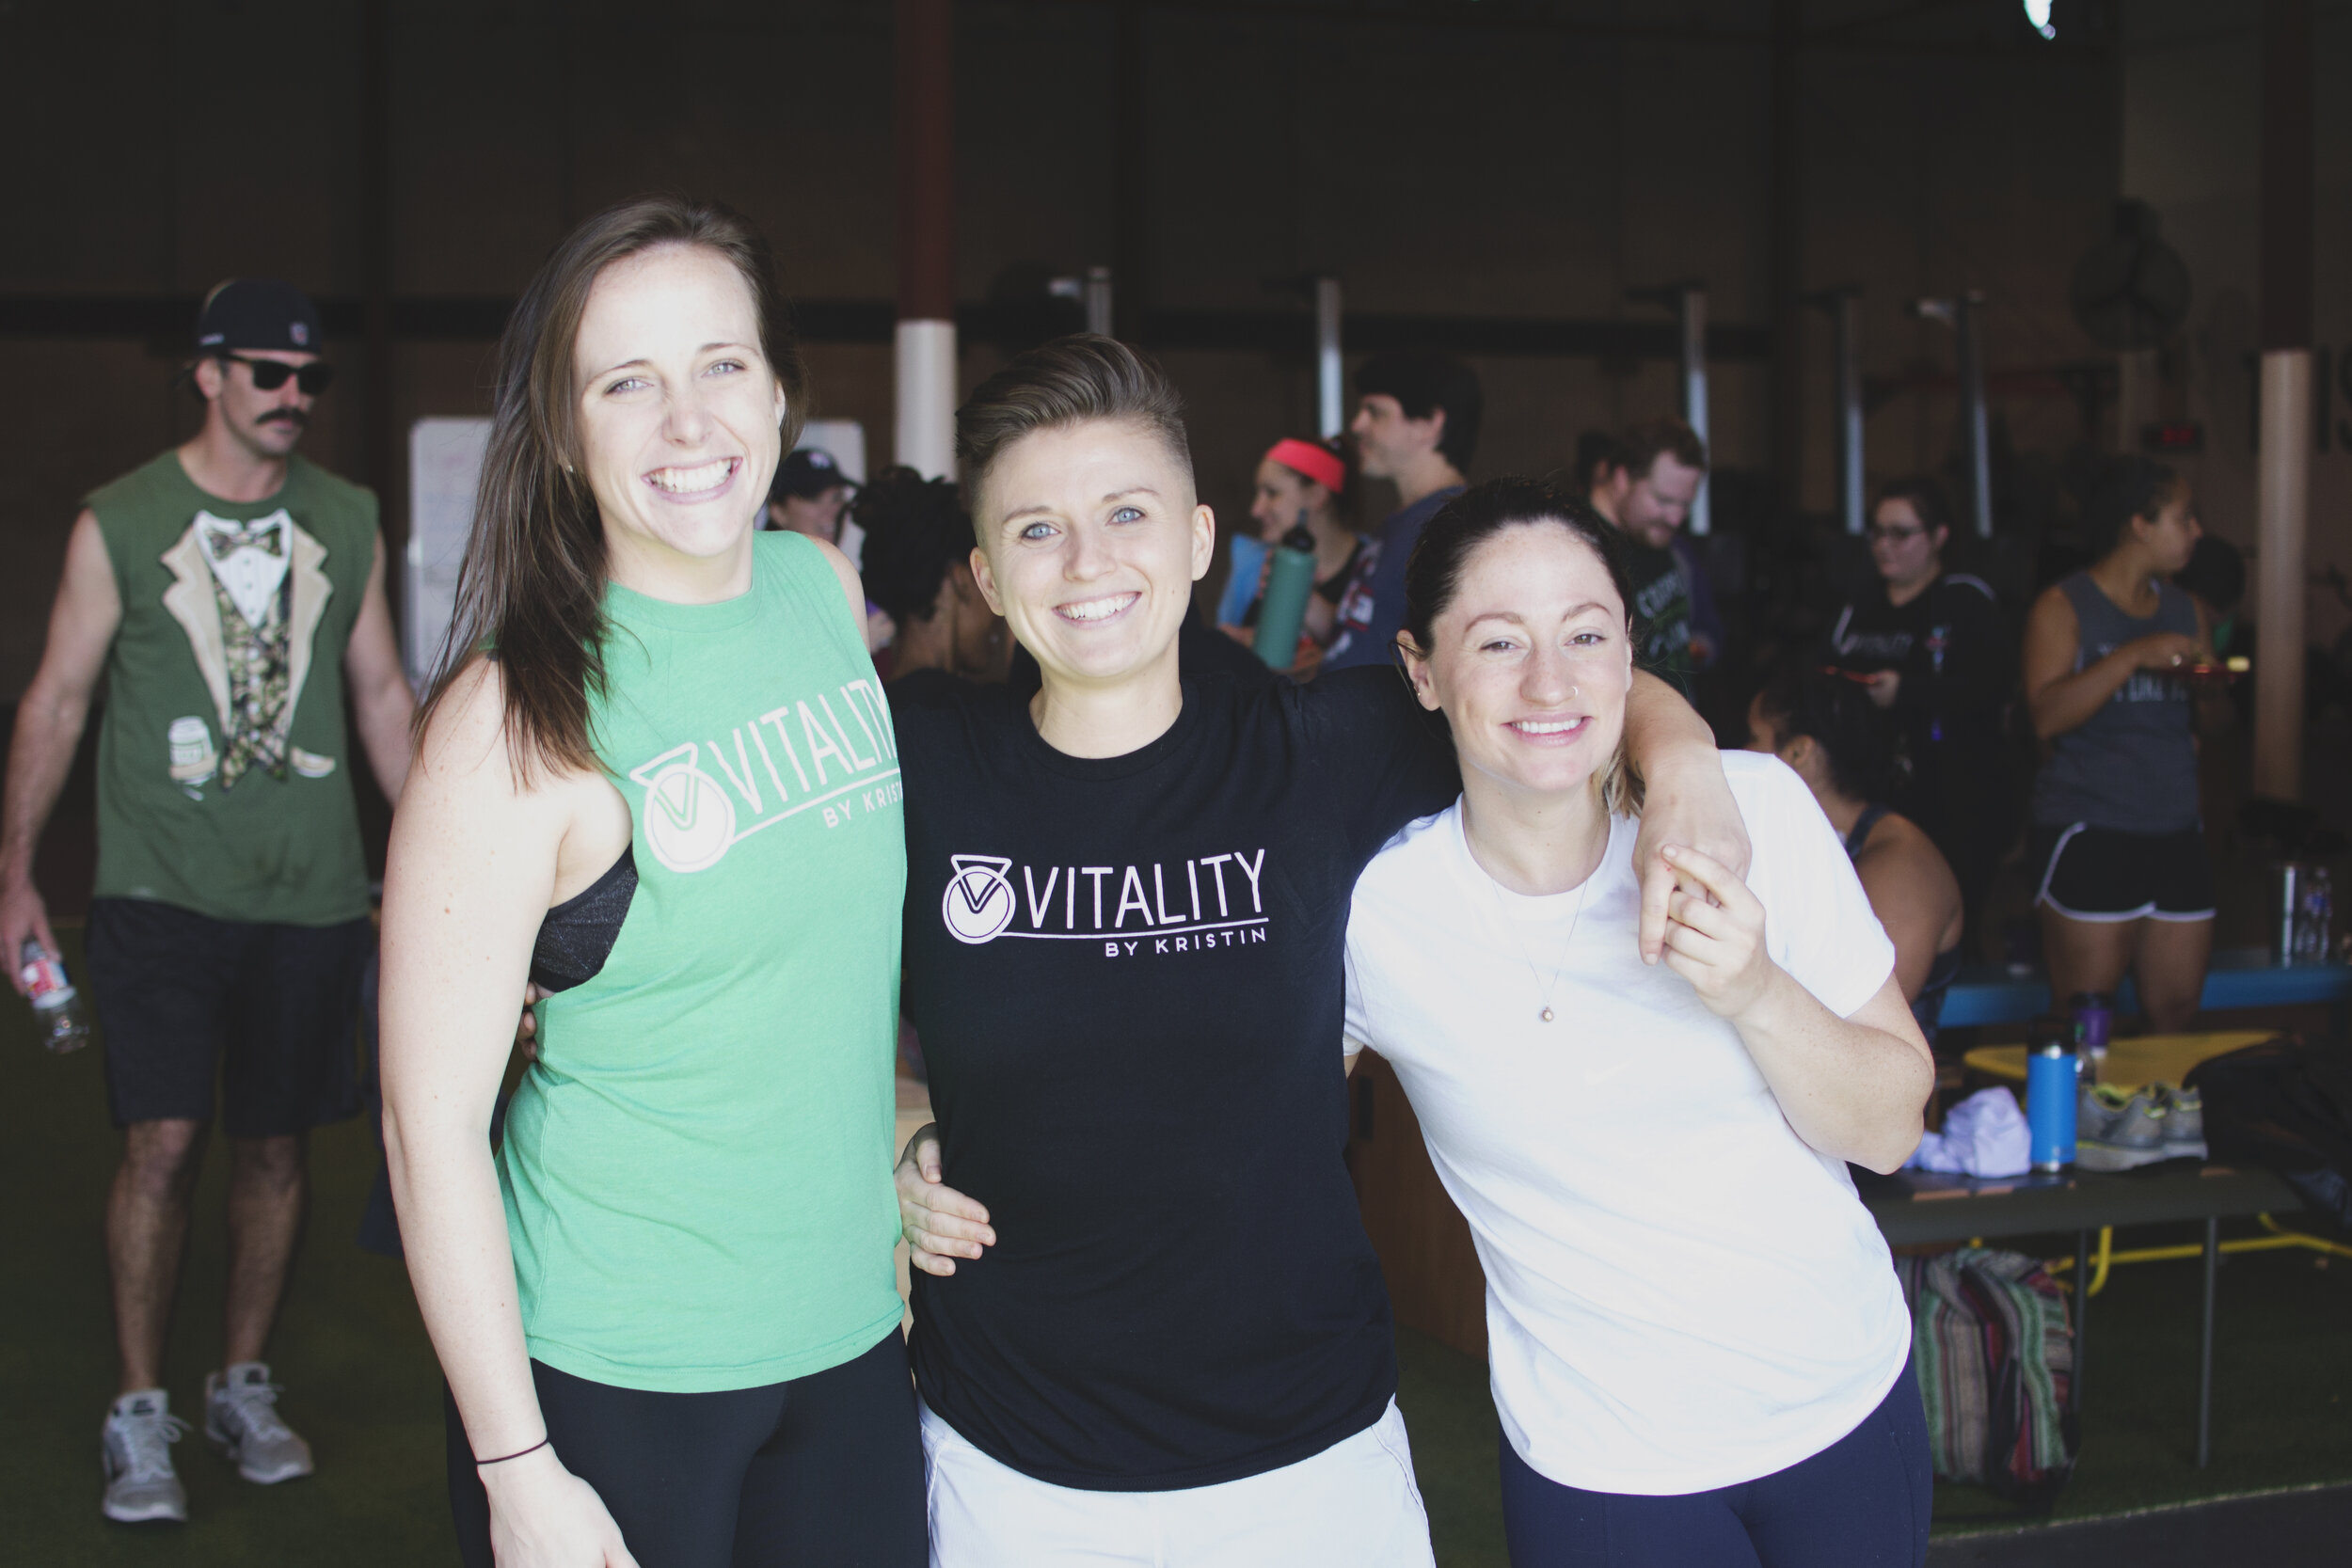 Kristin, Sarah, Greta, Carli - Our coaching staff is skilled at meeting you at your fitness level and pushing you to reach beyond it. Walking in is hard, but staying will be easy. Our members and coaches will surround you support and positive instruction.